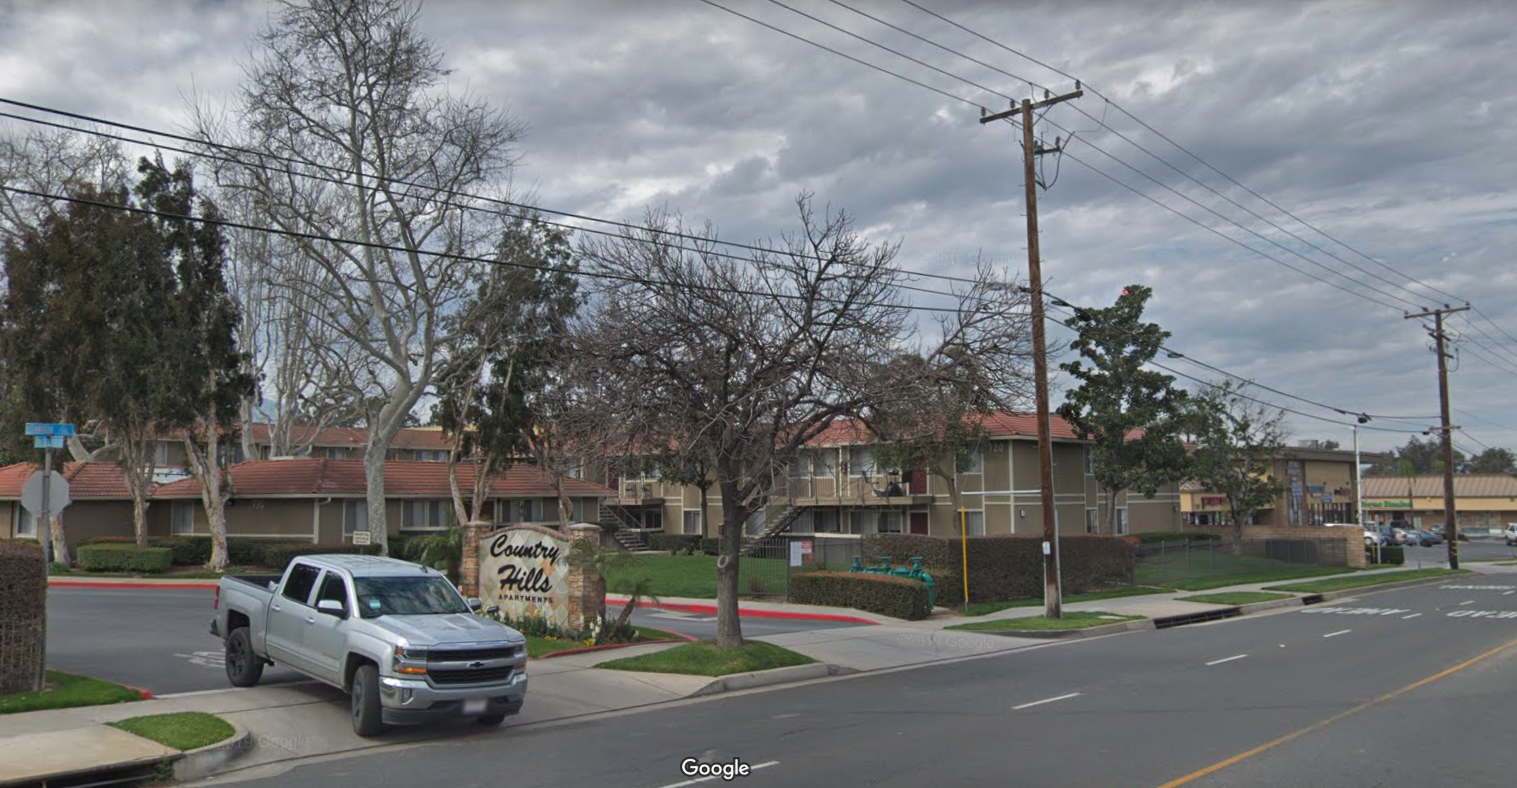 The Country Hills apartment complex in Corona is seen in a Google Maps Street View image.